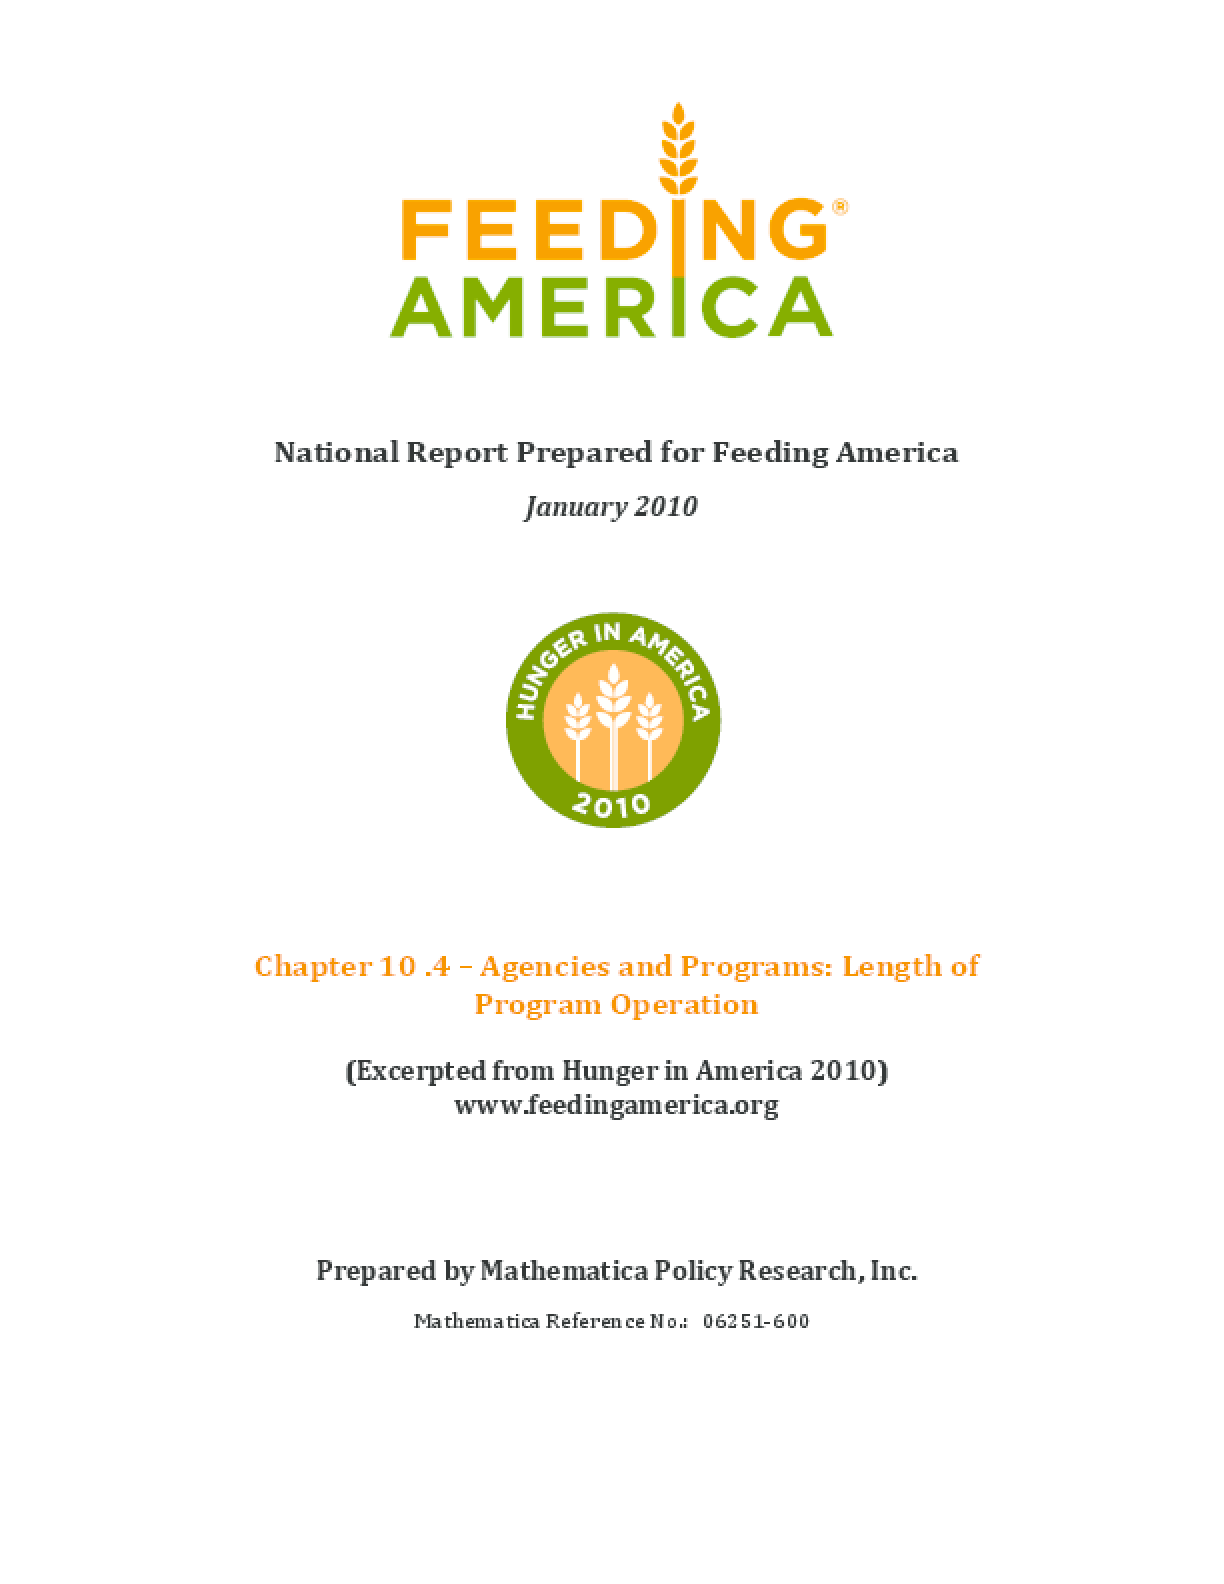 Feeding America Agencies and Food Programs: Length of Program Operation